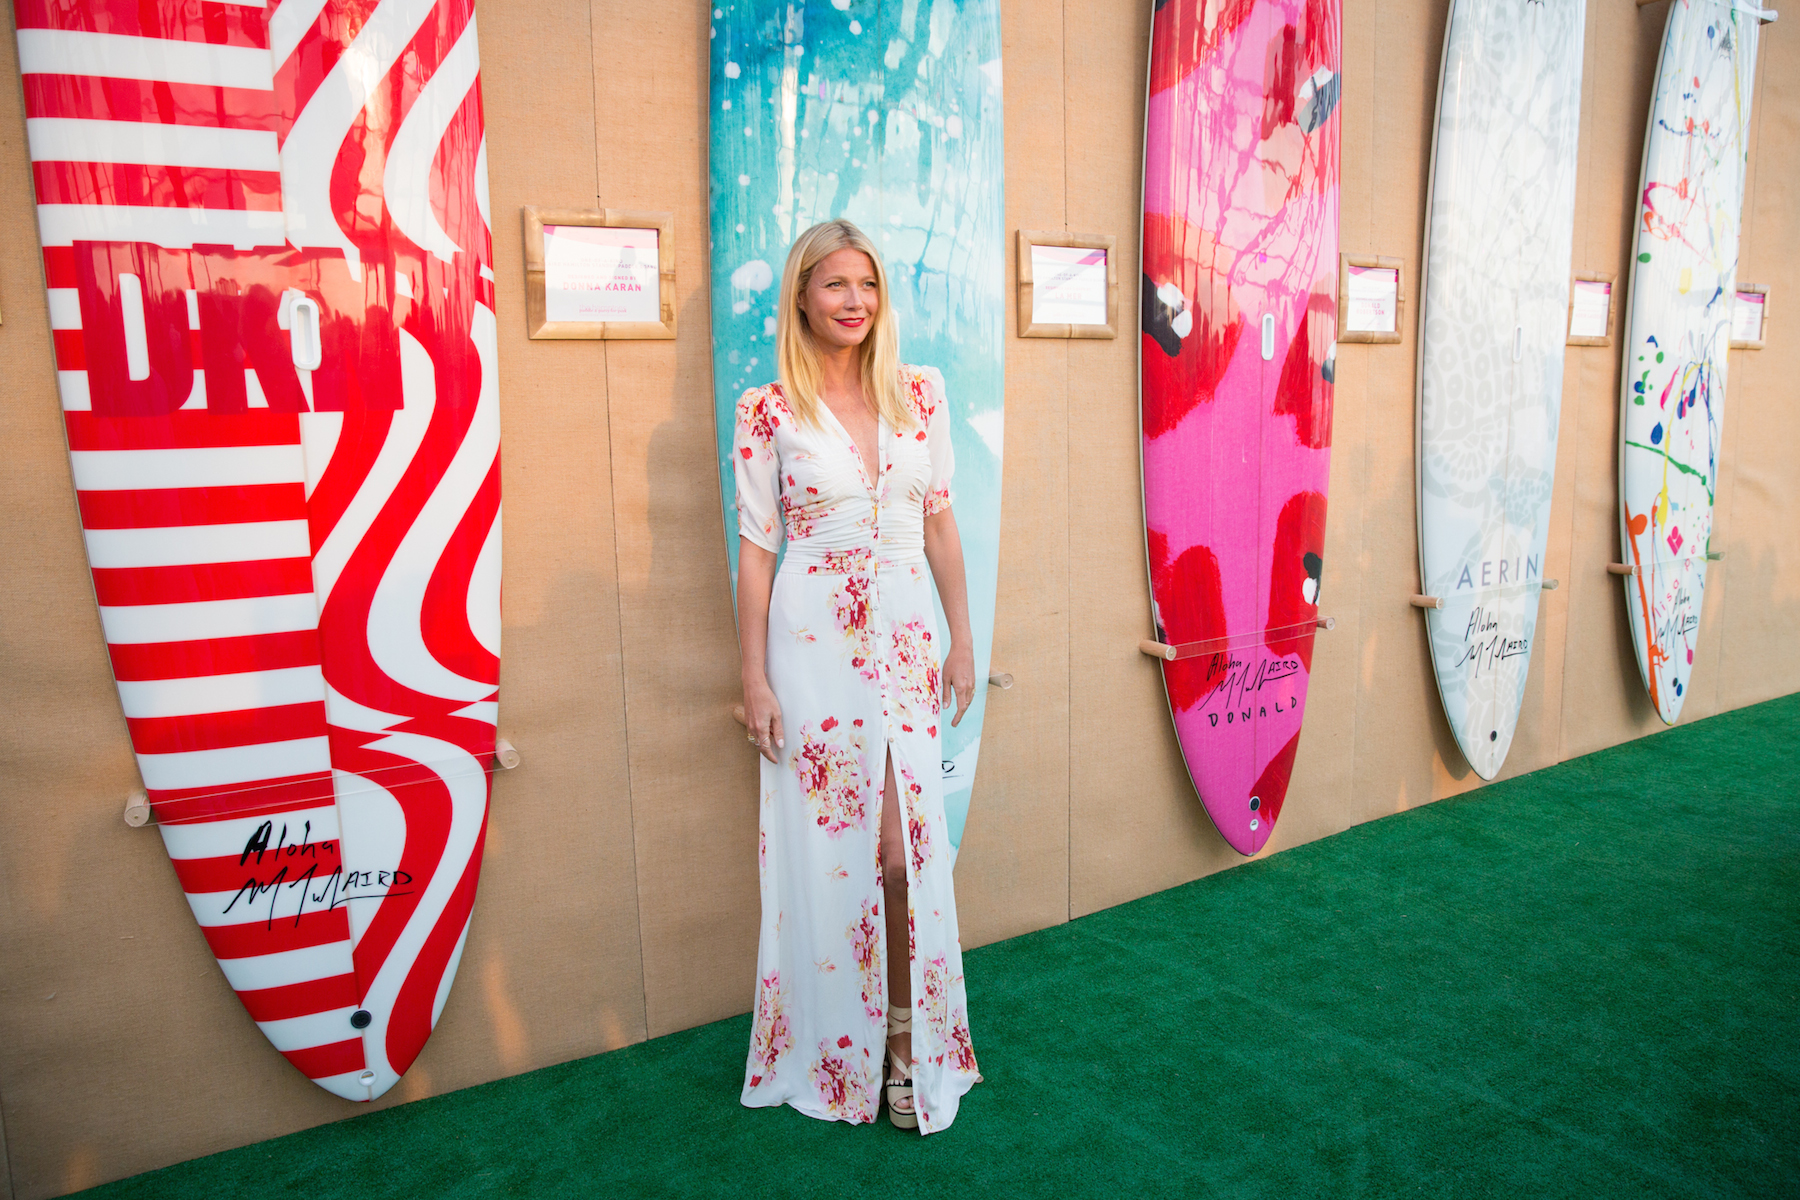 Gwyneth Paltrow makes a surprise appearance at Paddle for Pink (credit: michael blanchard)